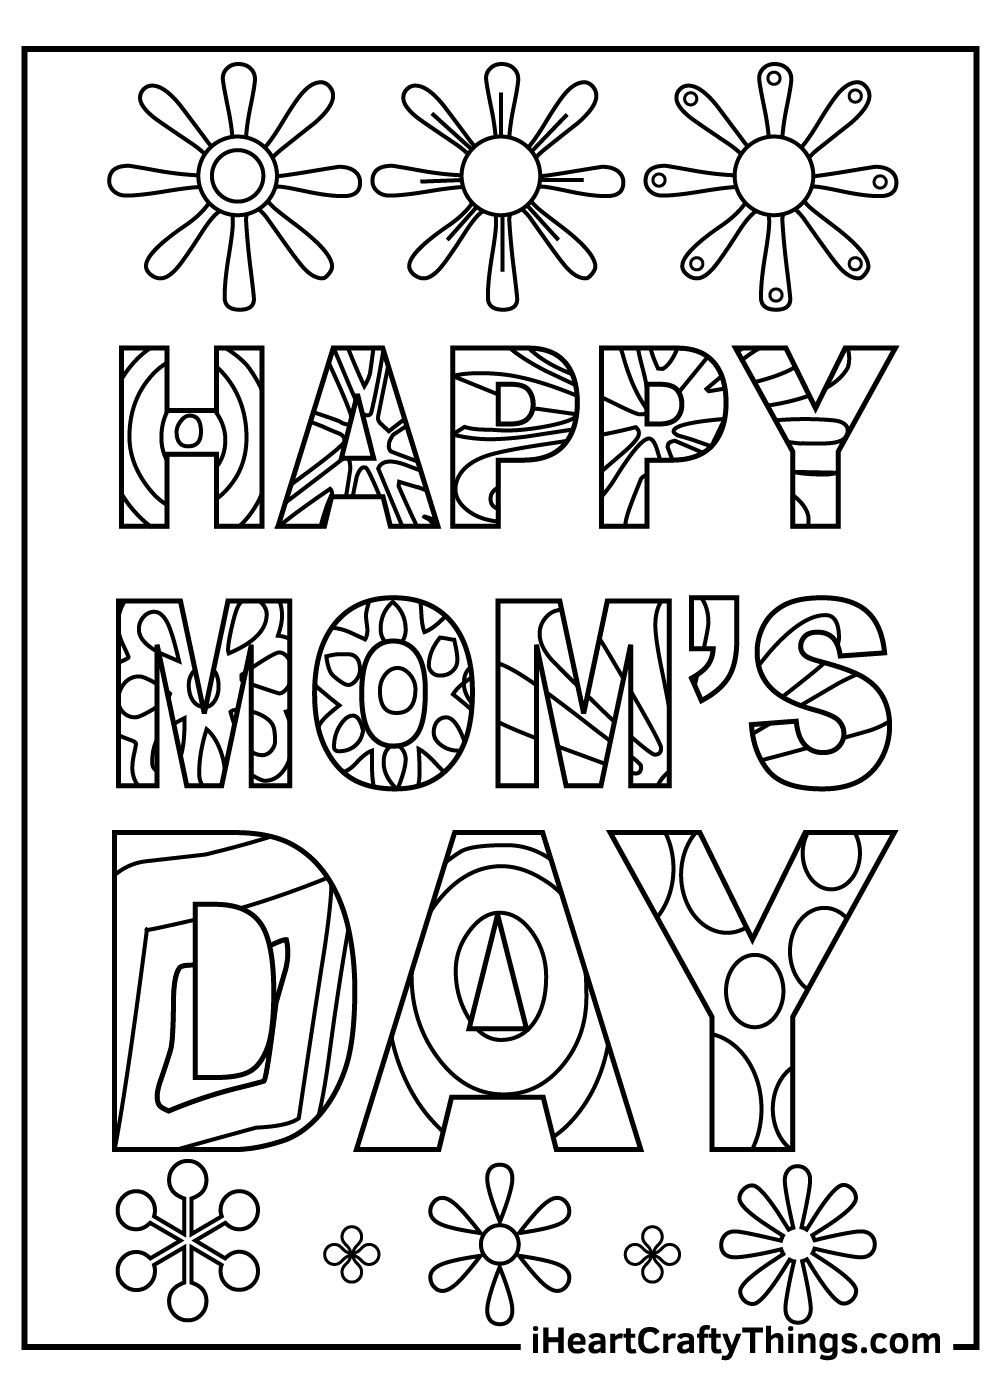 happy mom's day coloring sheets pdf